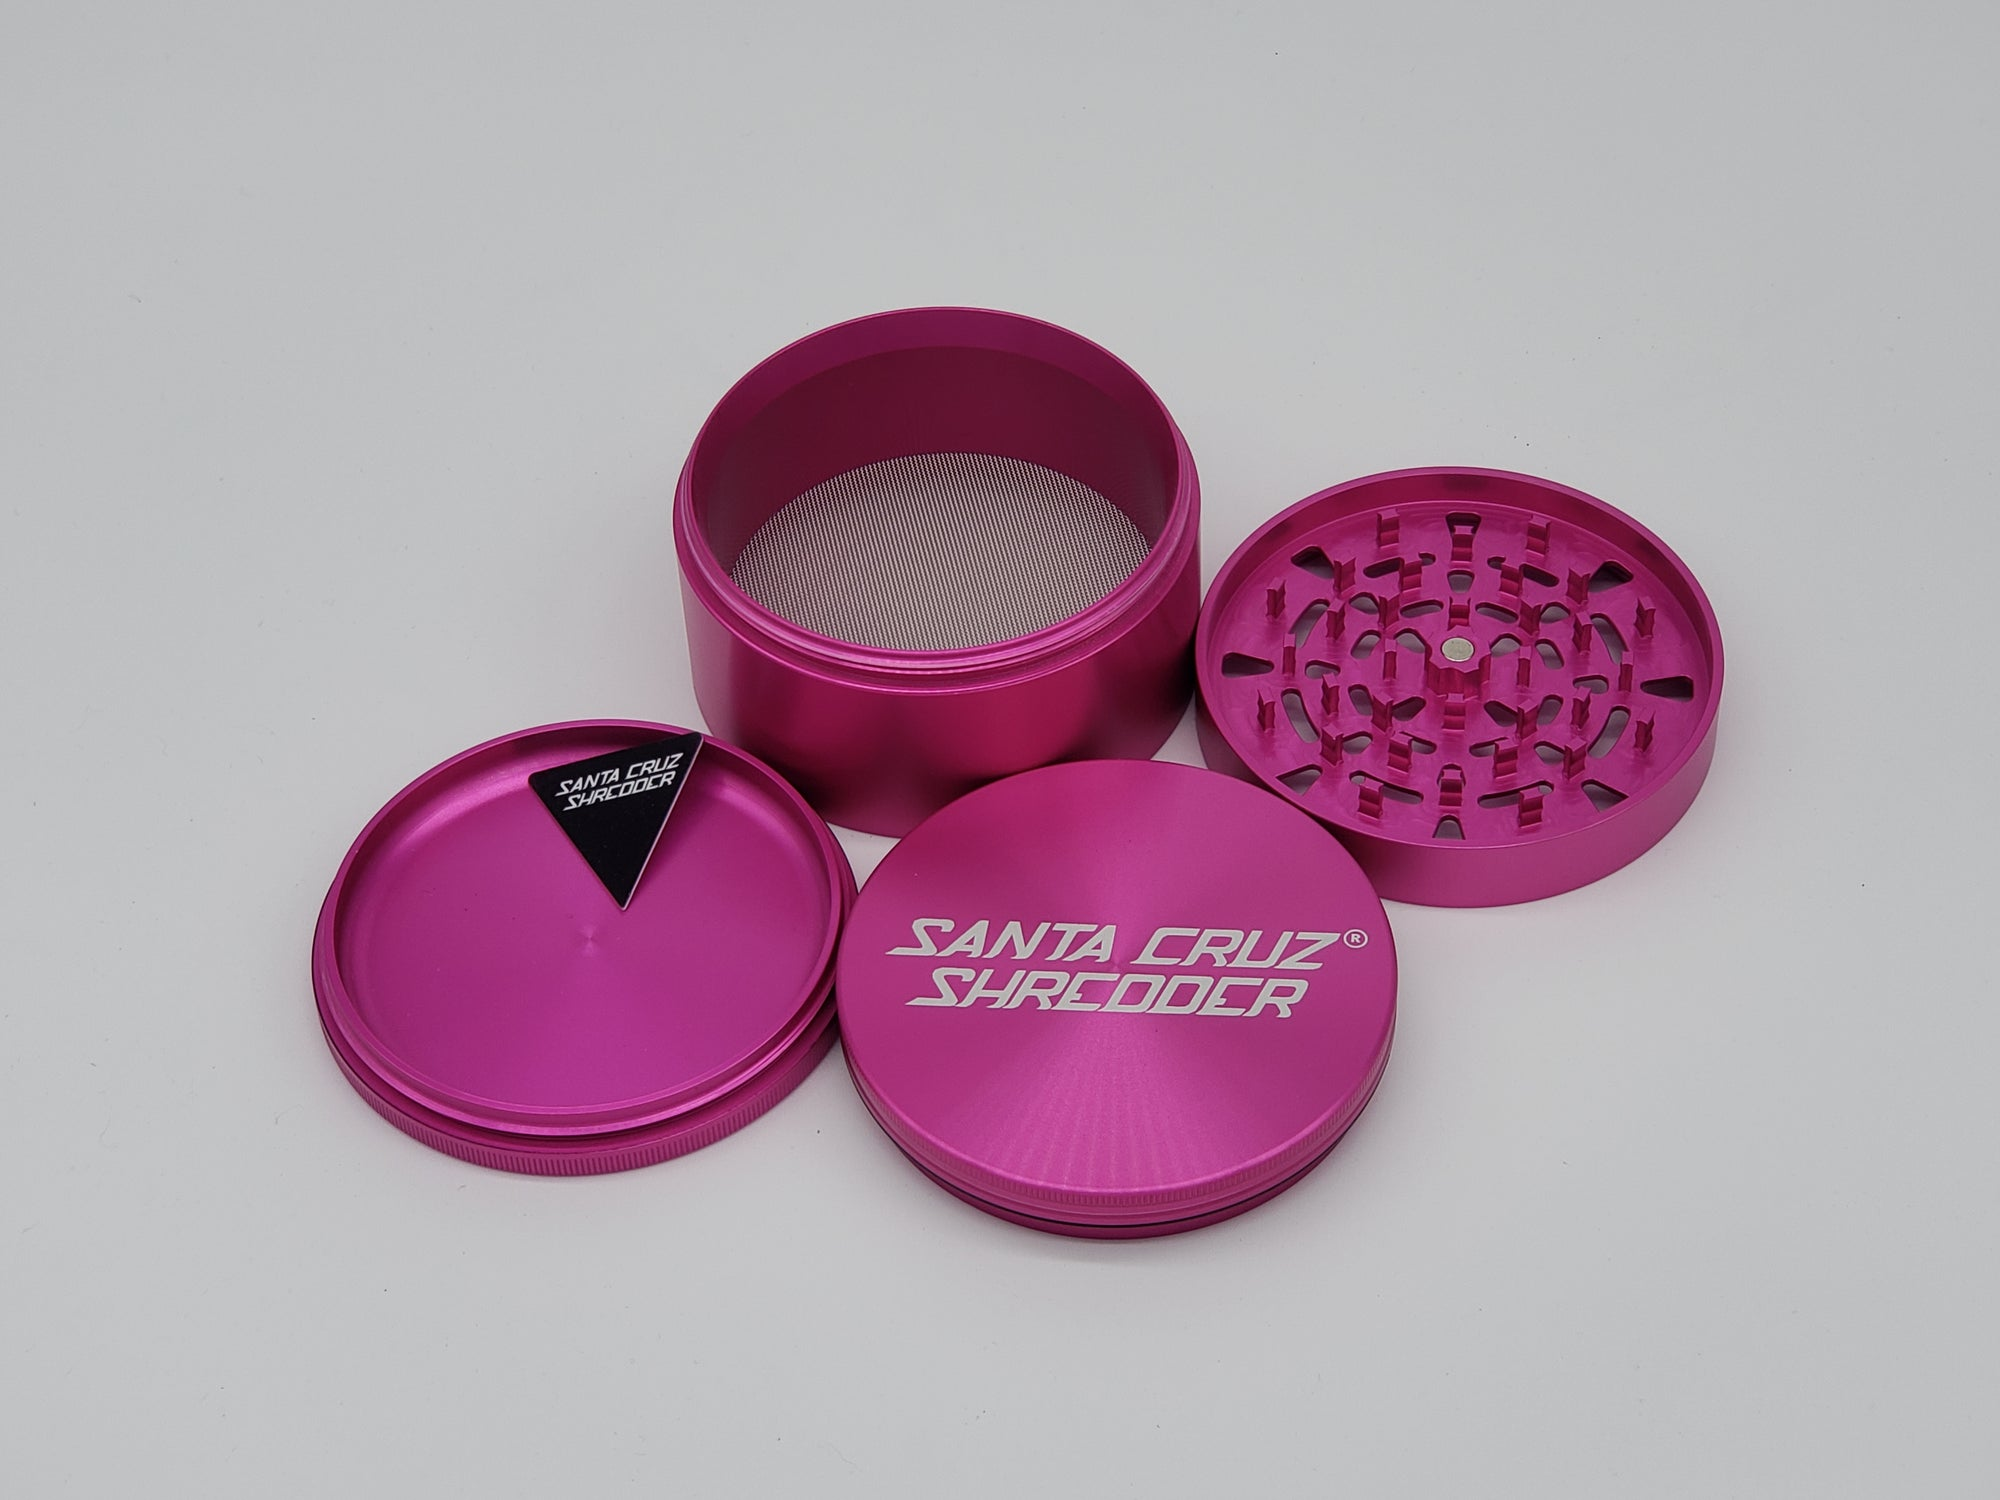 Santa Cruz Shredder 4 Piece